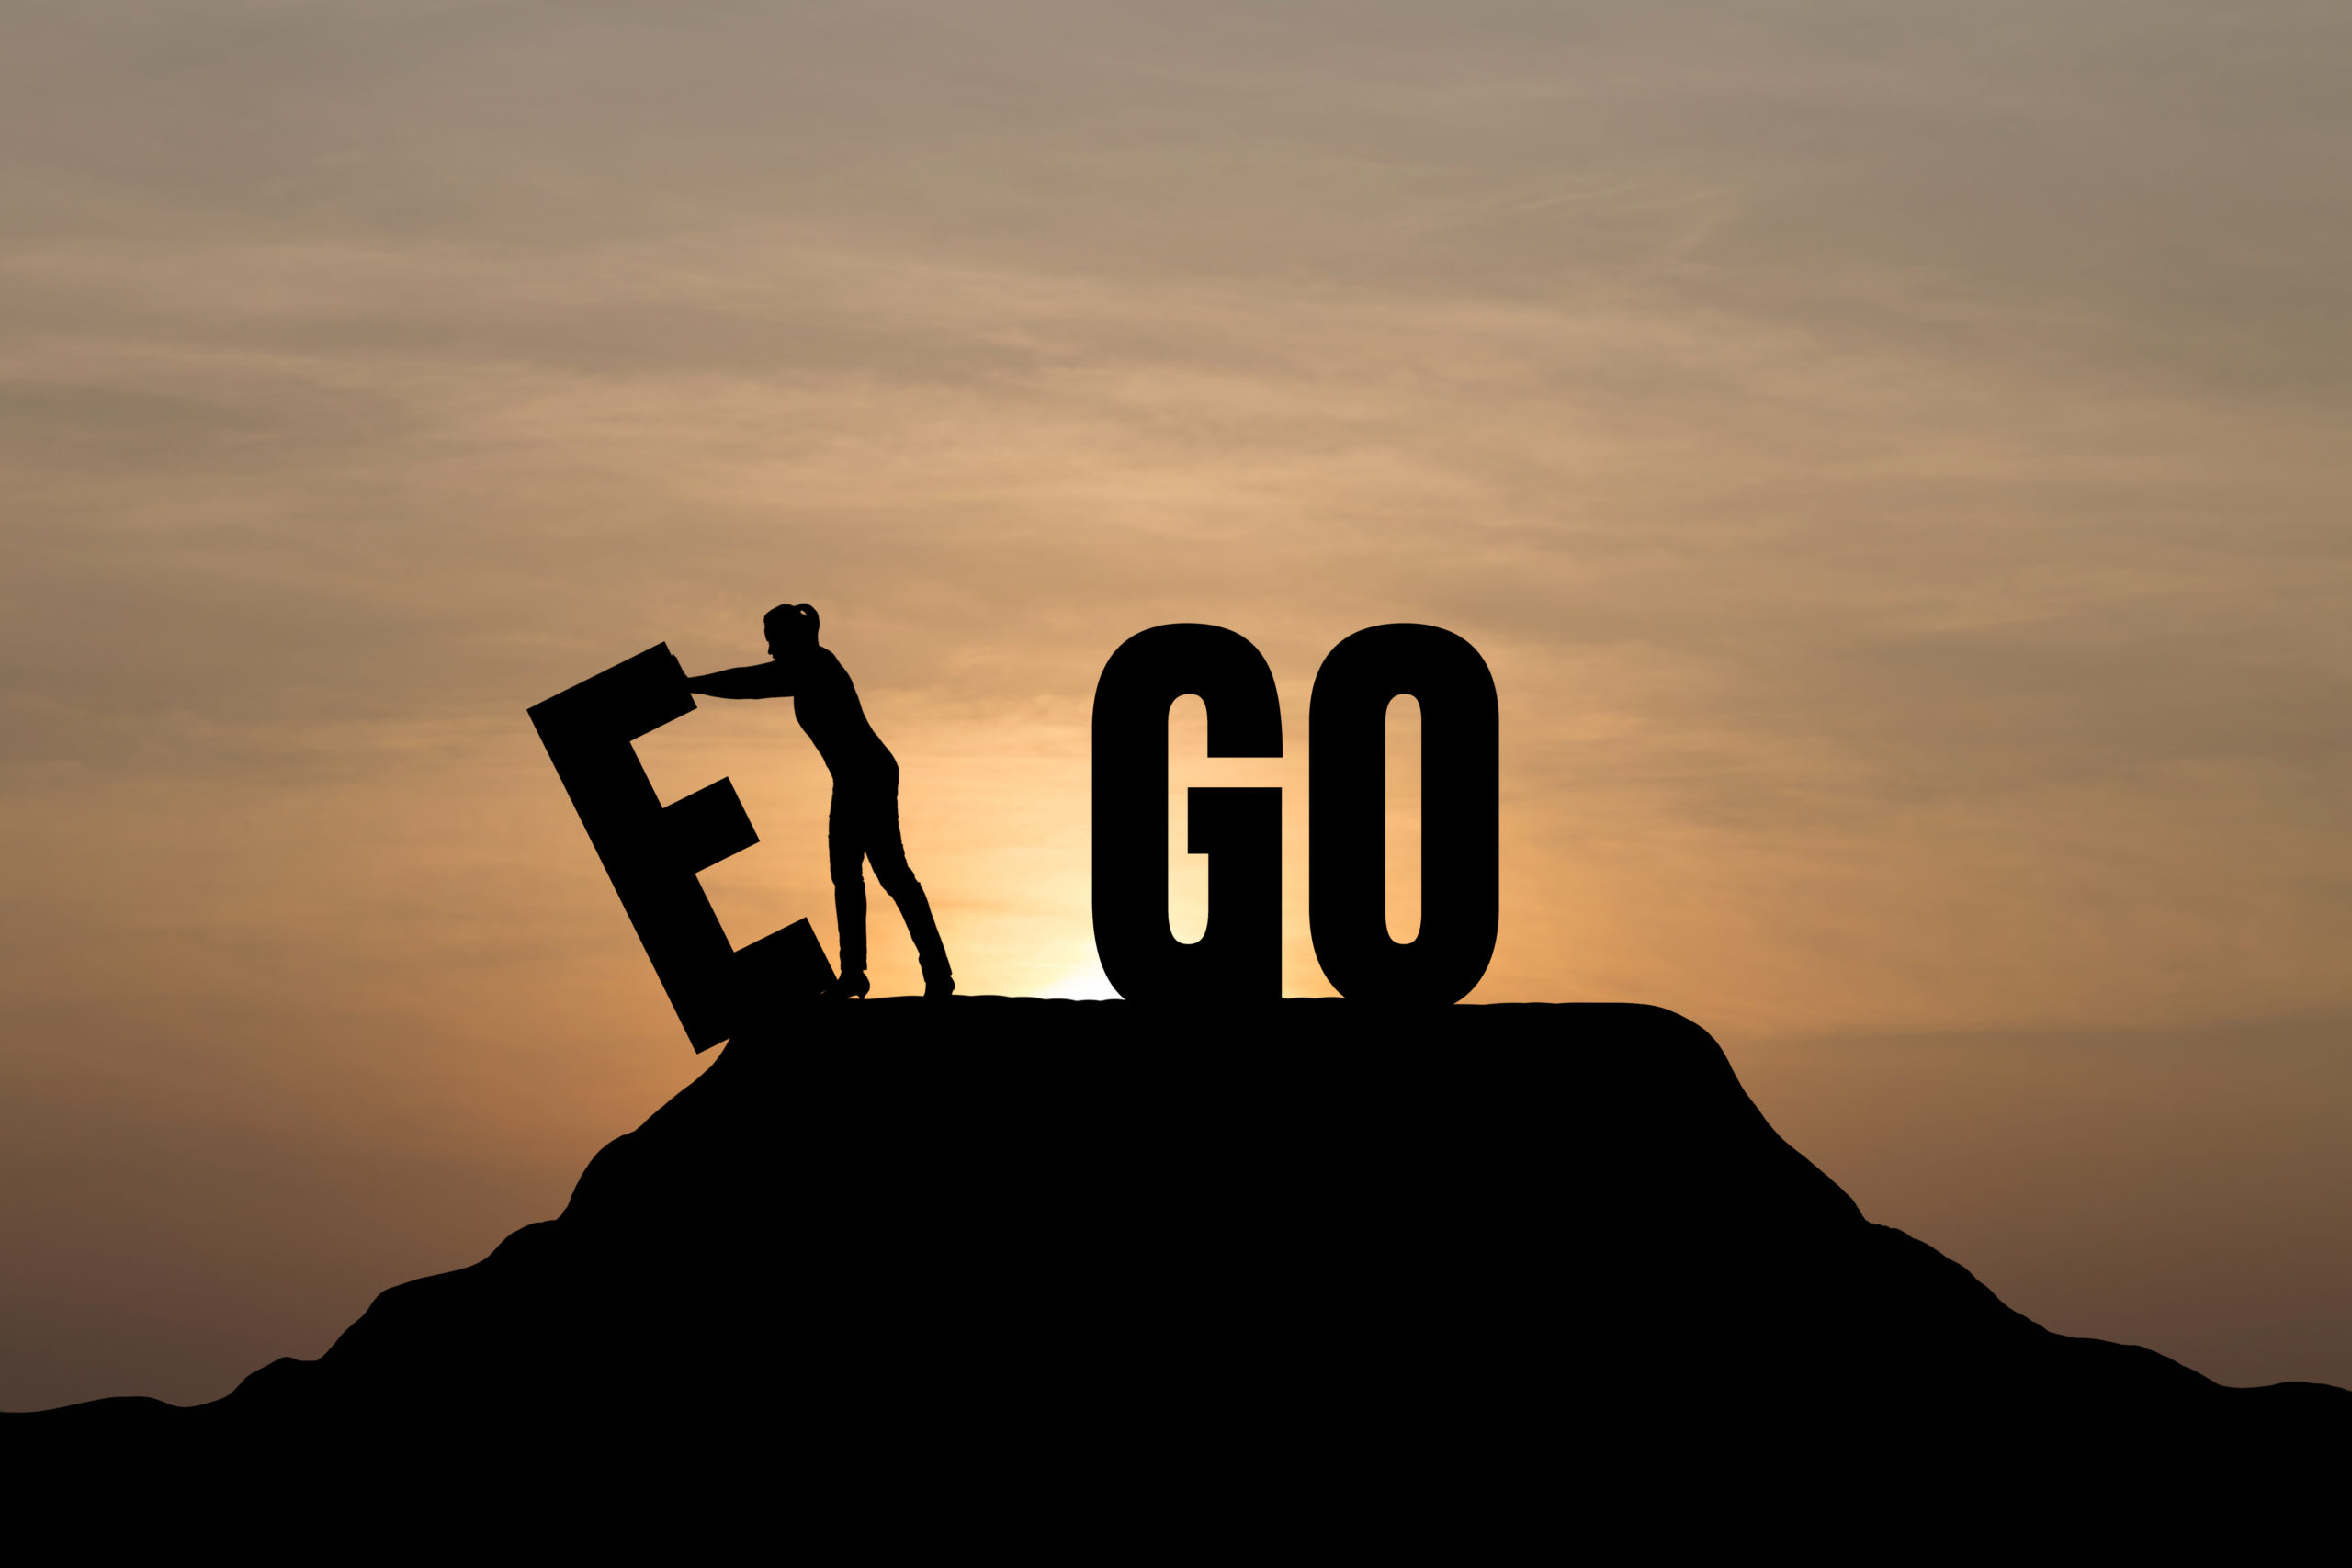 Ways to Control Your Ego